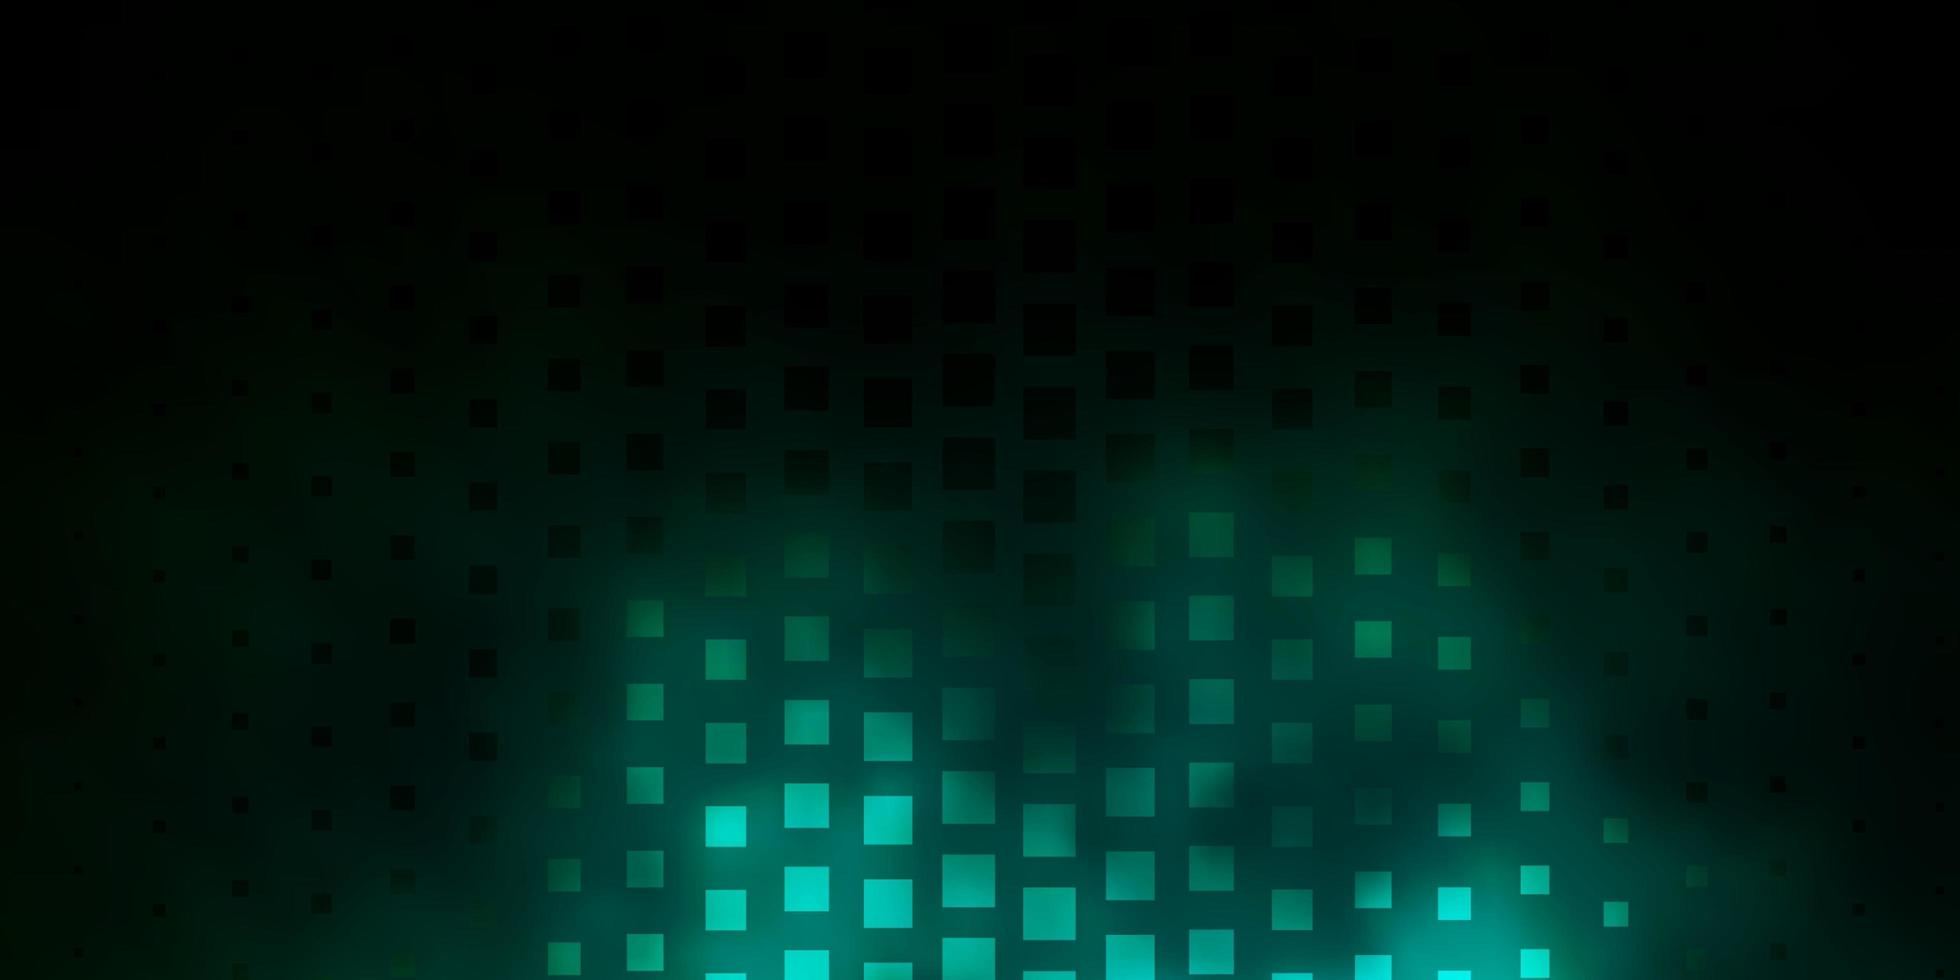 Dark Green vector background with rectangles.